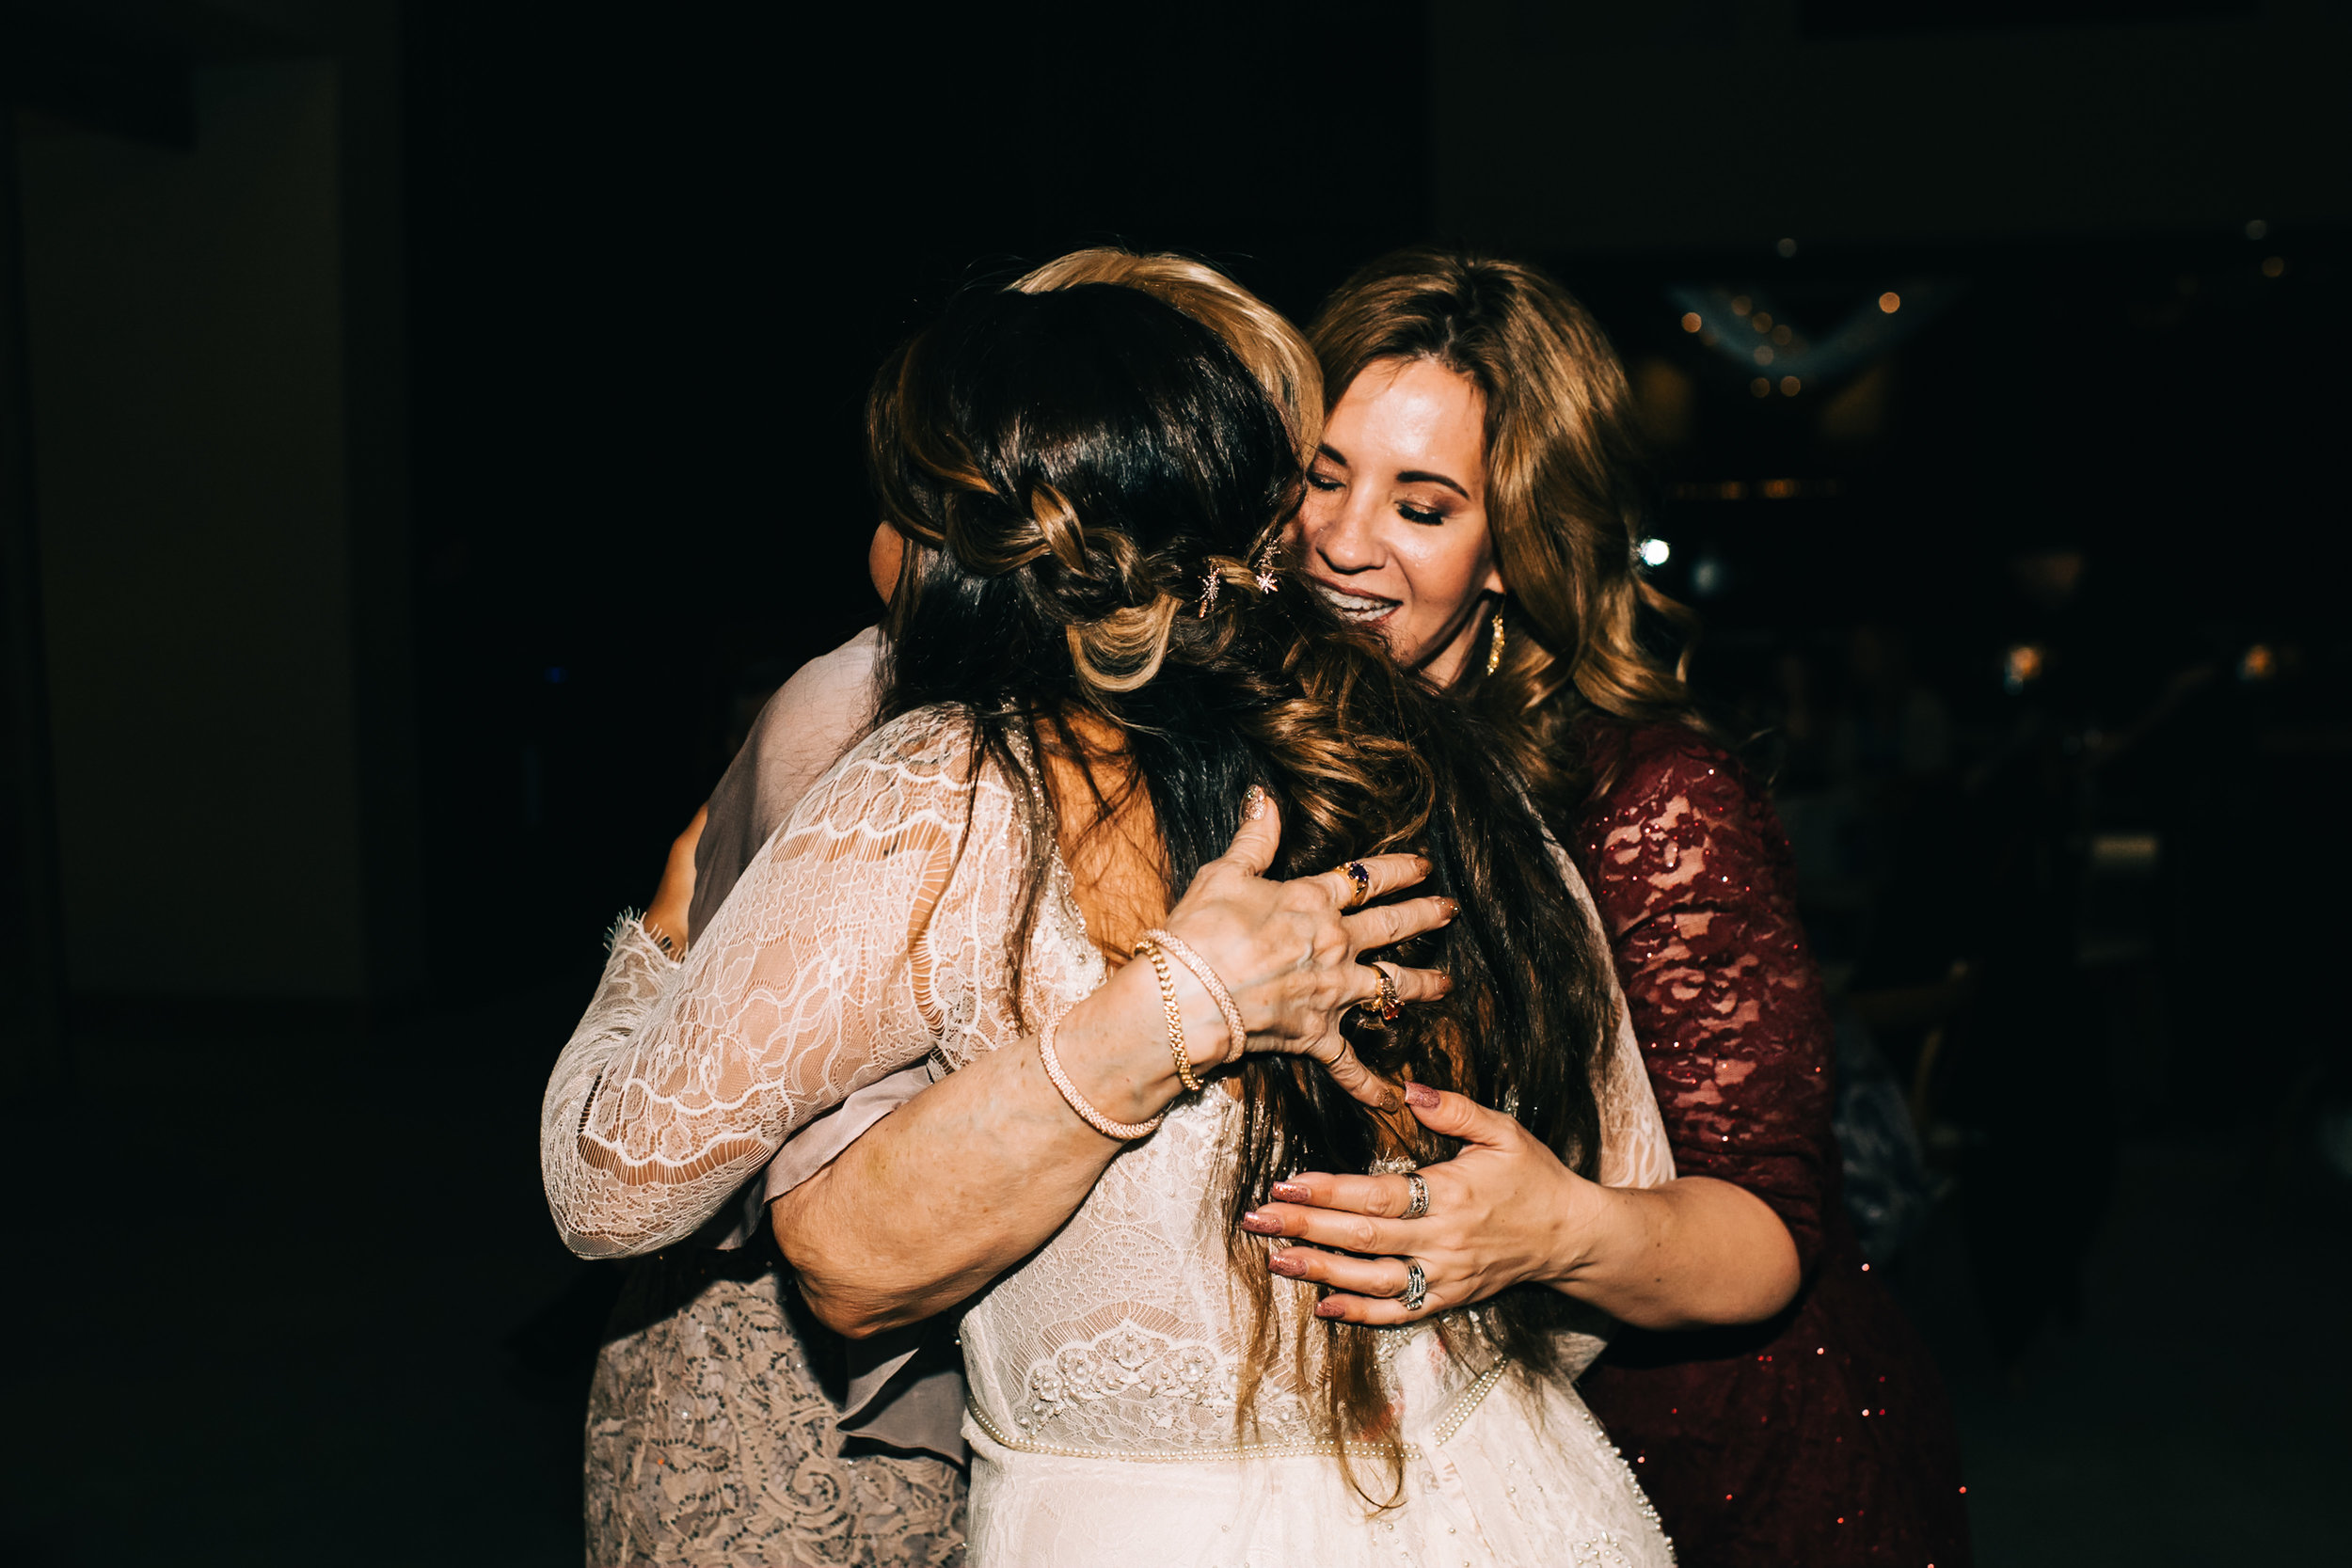 bay area nontraditional wedding photographer southern california boho wedding love light magic san francisco oakland northern california-1313.jpg